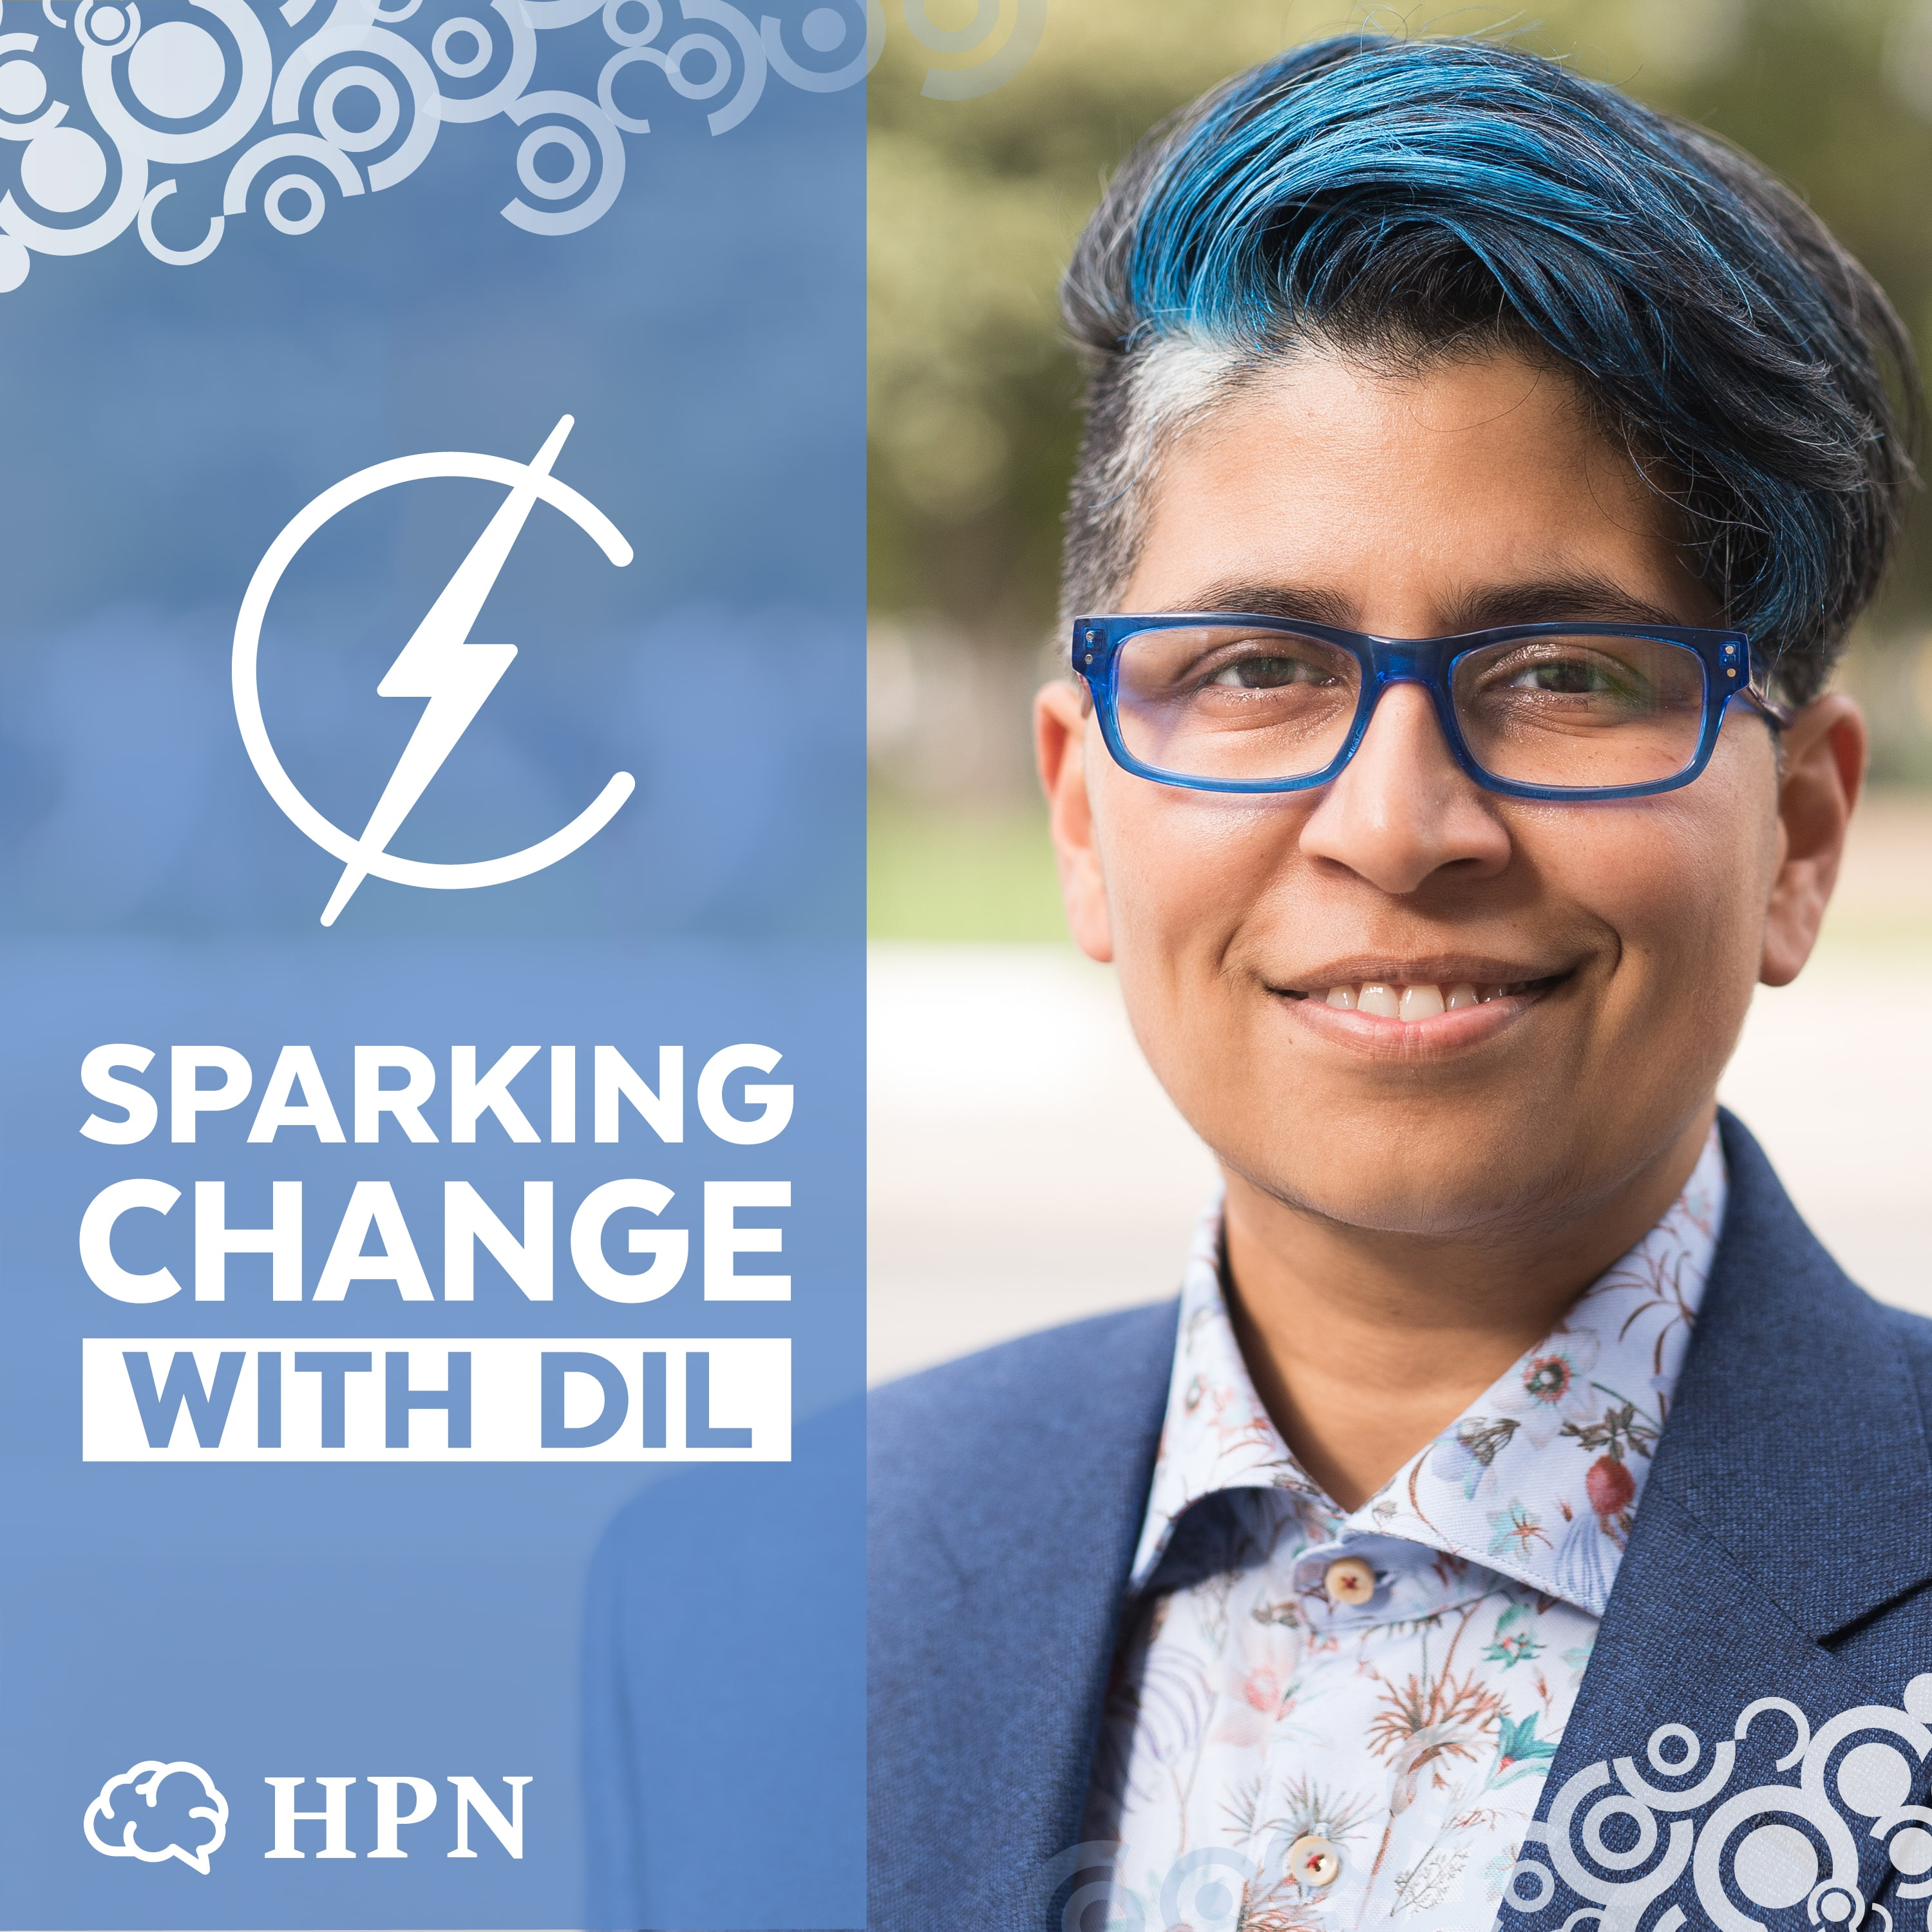 Dil Wickremasinghe podcast, Sparking Change with Dil, HPN, The HeadStuff Podcast Network, equality, activism - HeadStuff.org